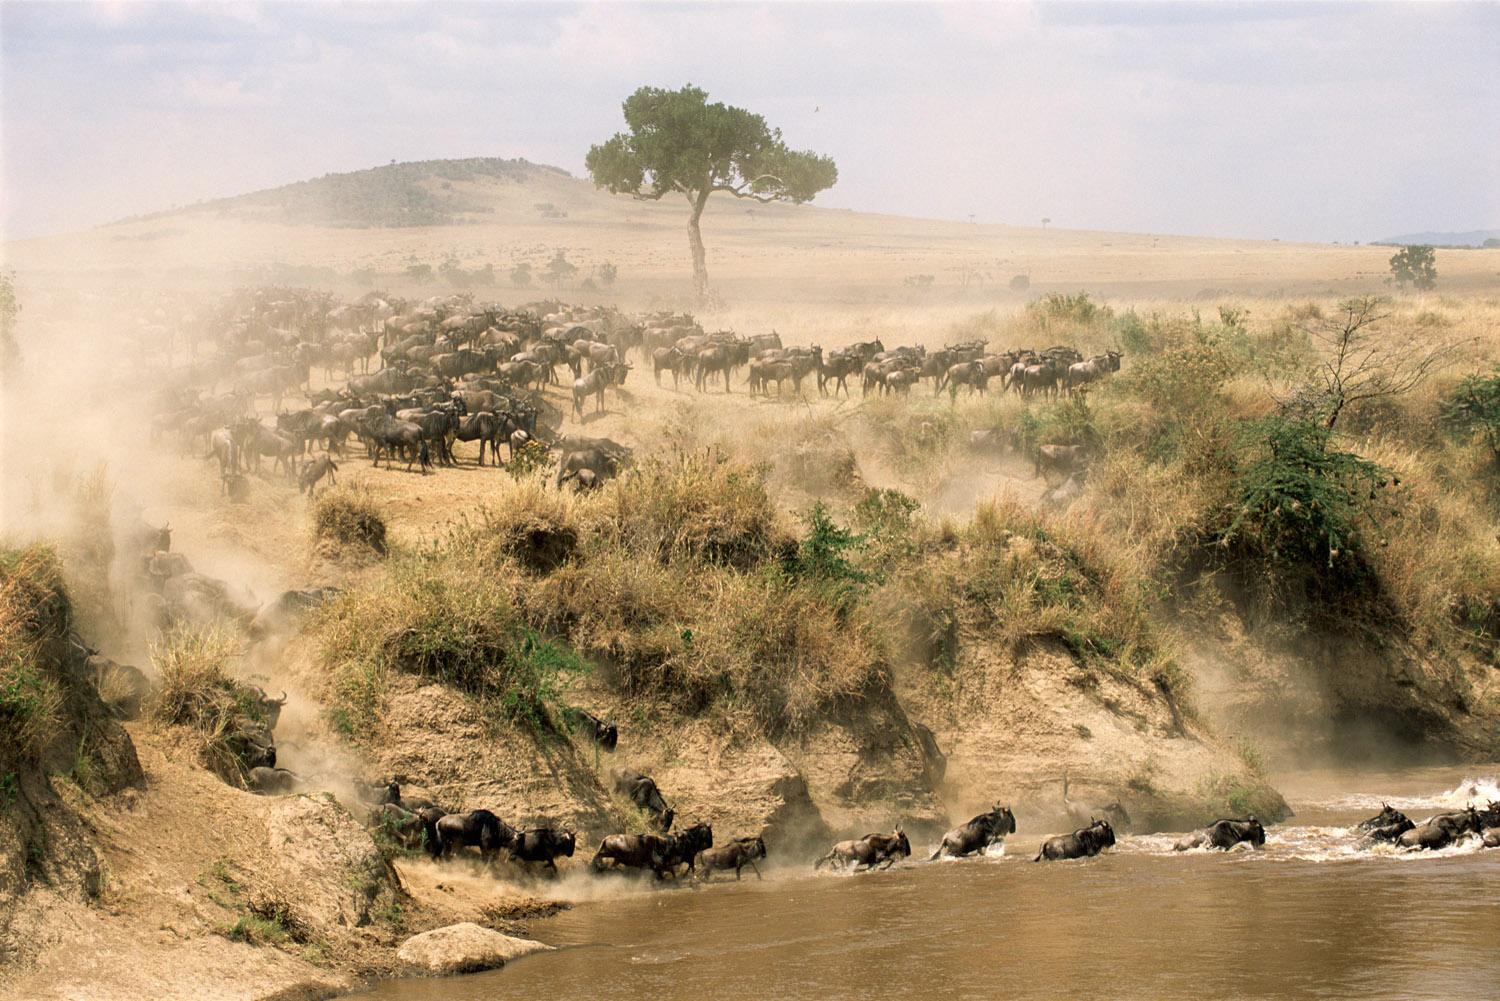 Wildebeest herd crossing Mara River, Masai Mara National Reserve, Kenya